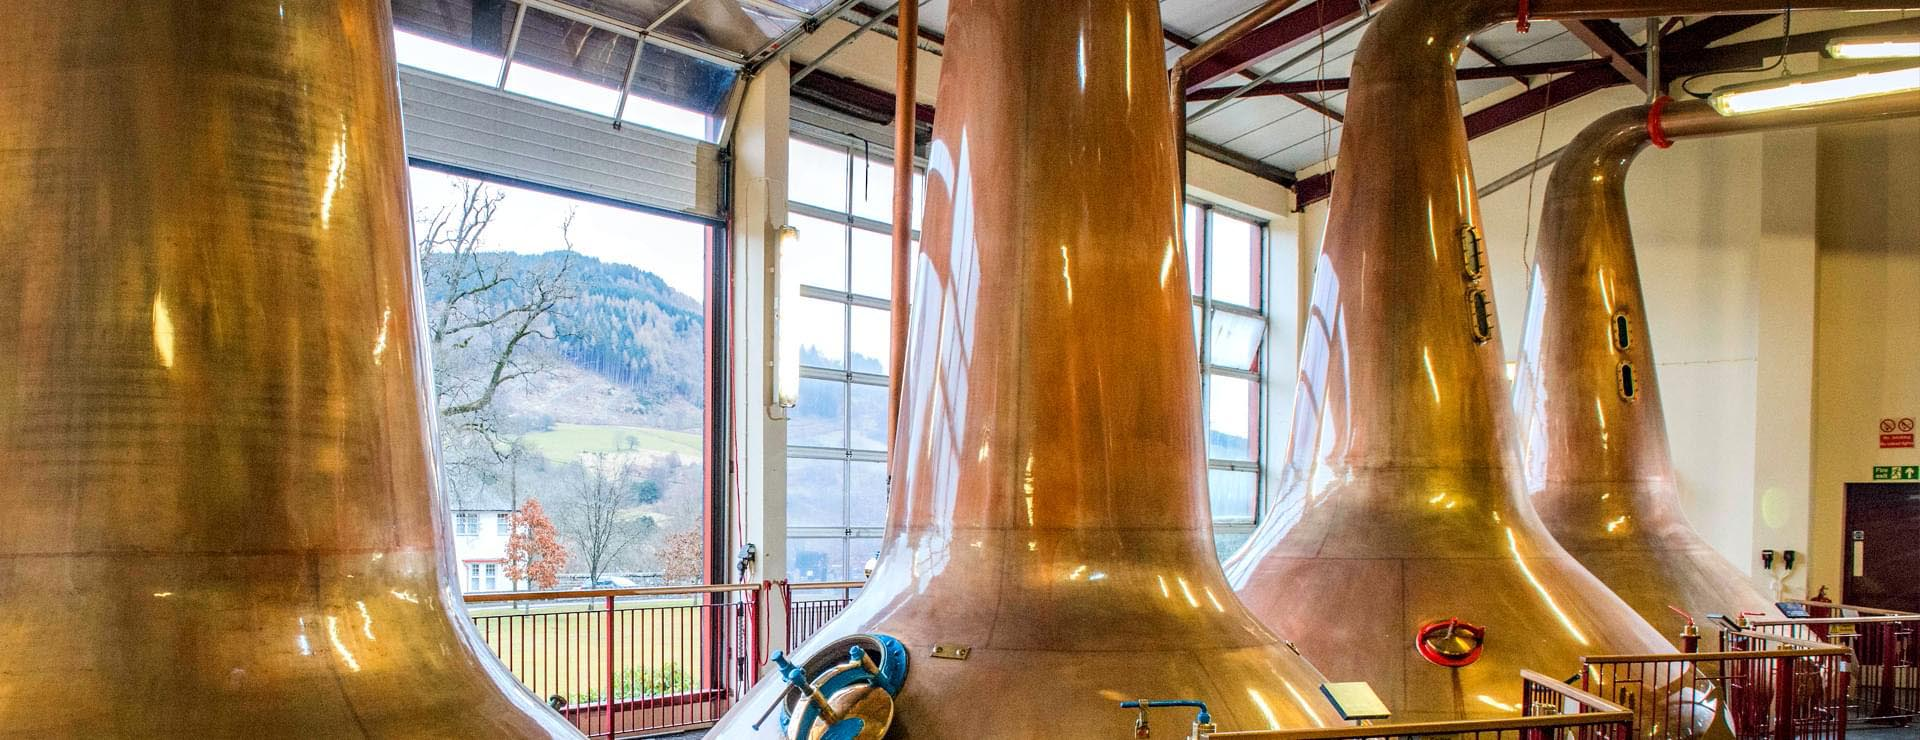 The Still Room where Aberfeldy single malt whisky, the heart of Dewar's blended Scotch, is distilled.